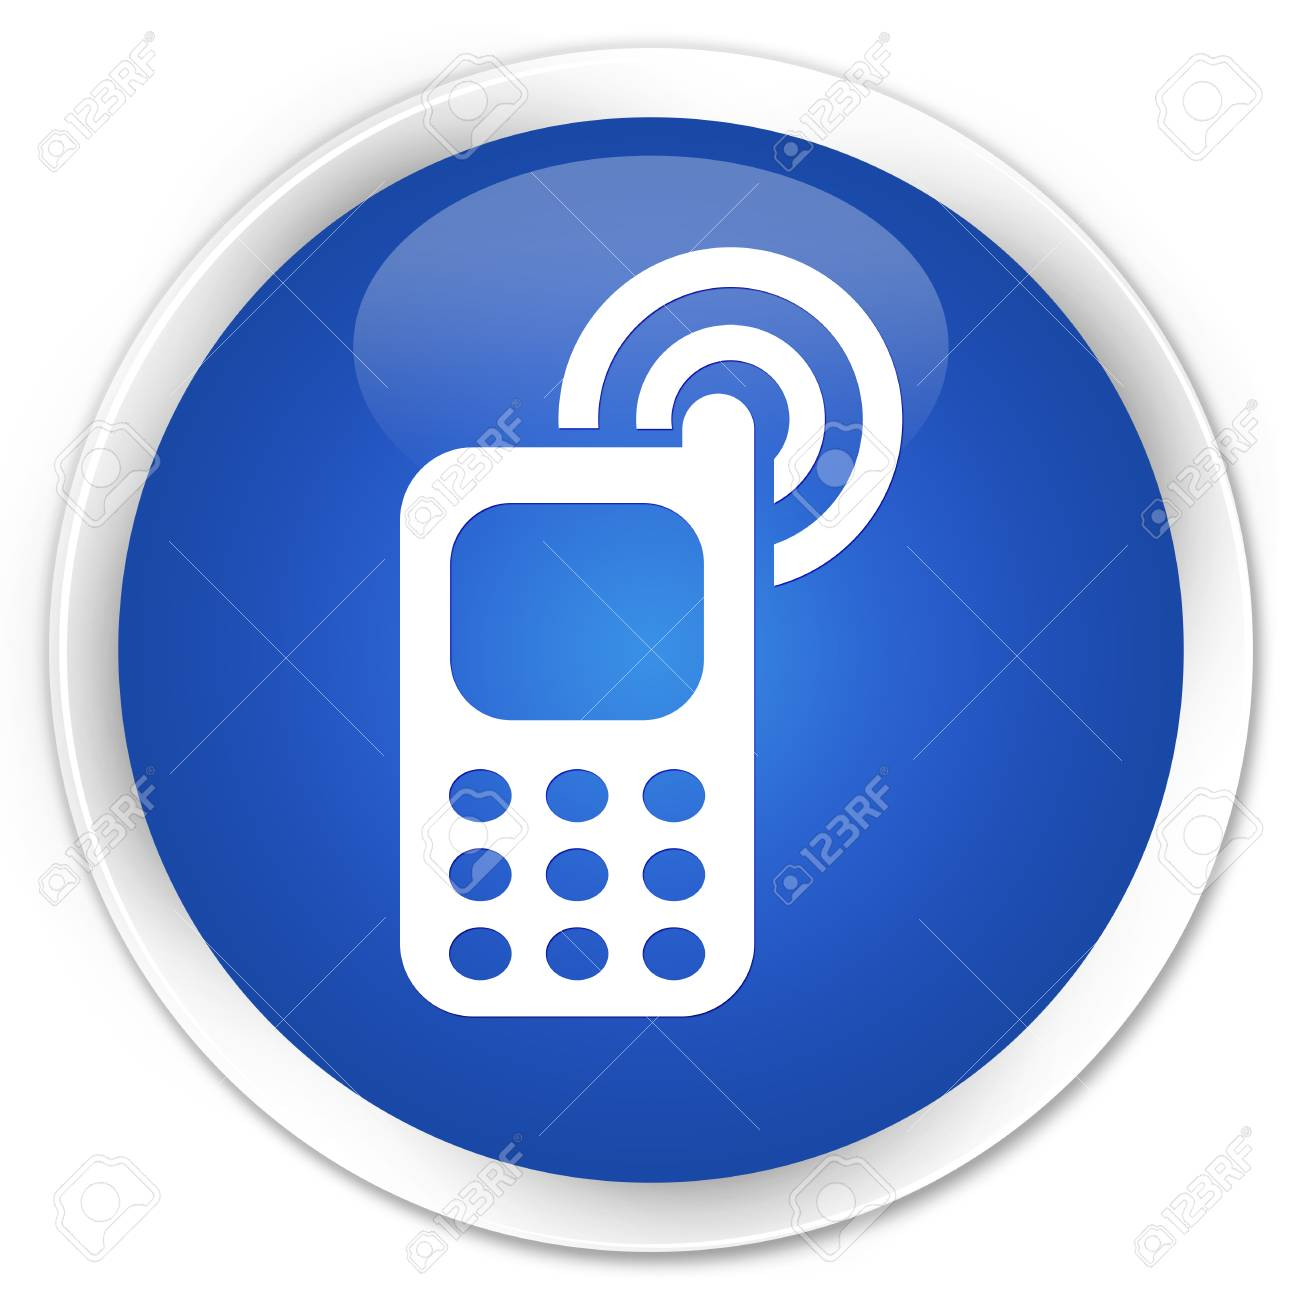 Cellphone ringing icon blue glossy round button